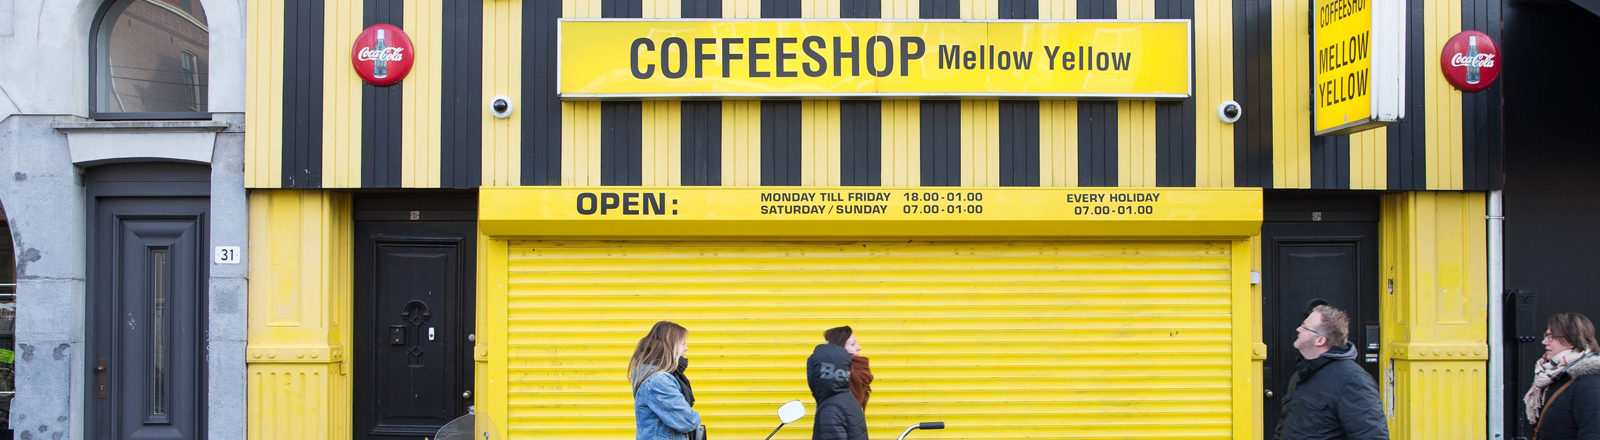 Amsterdams ältester Coffeeshop, Mellow Yellow